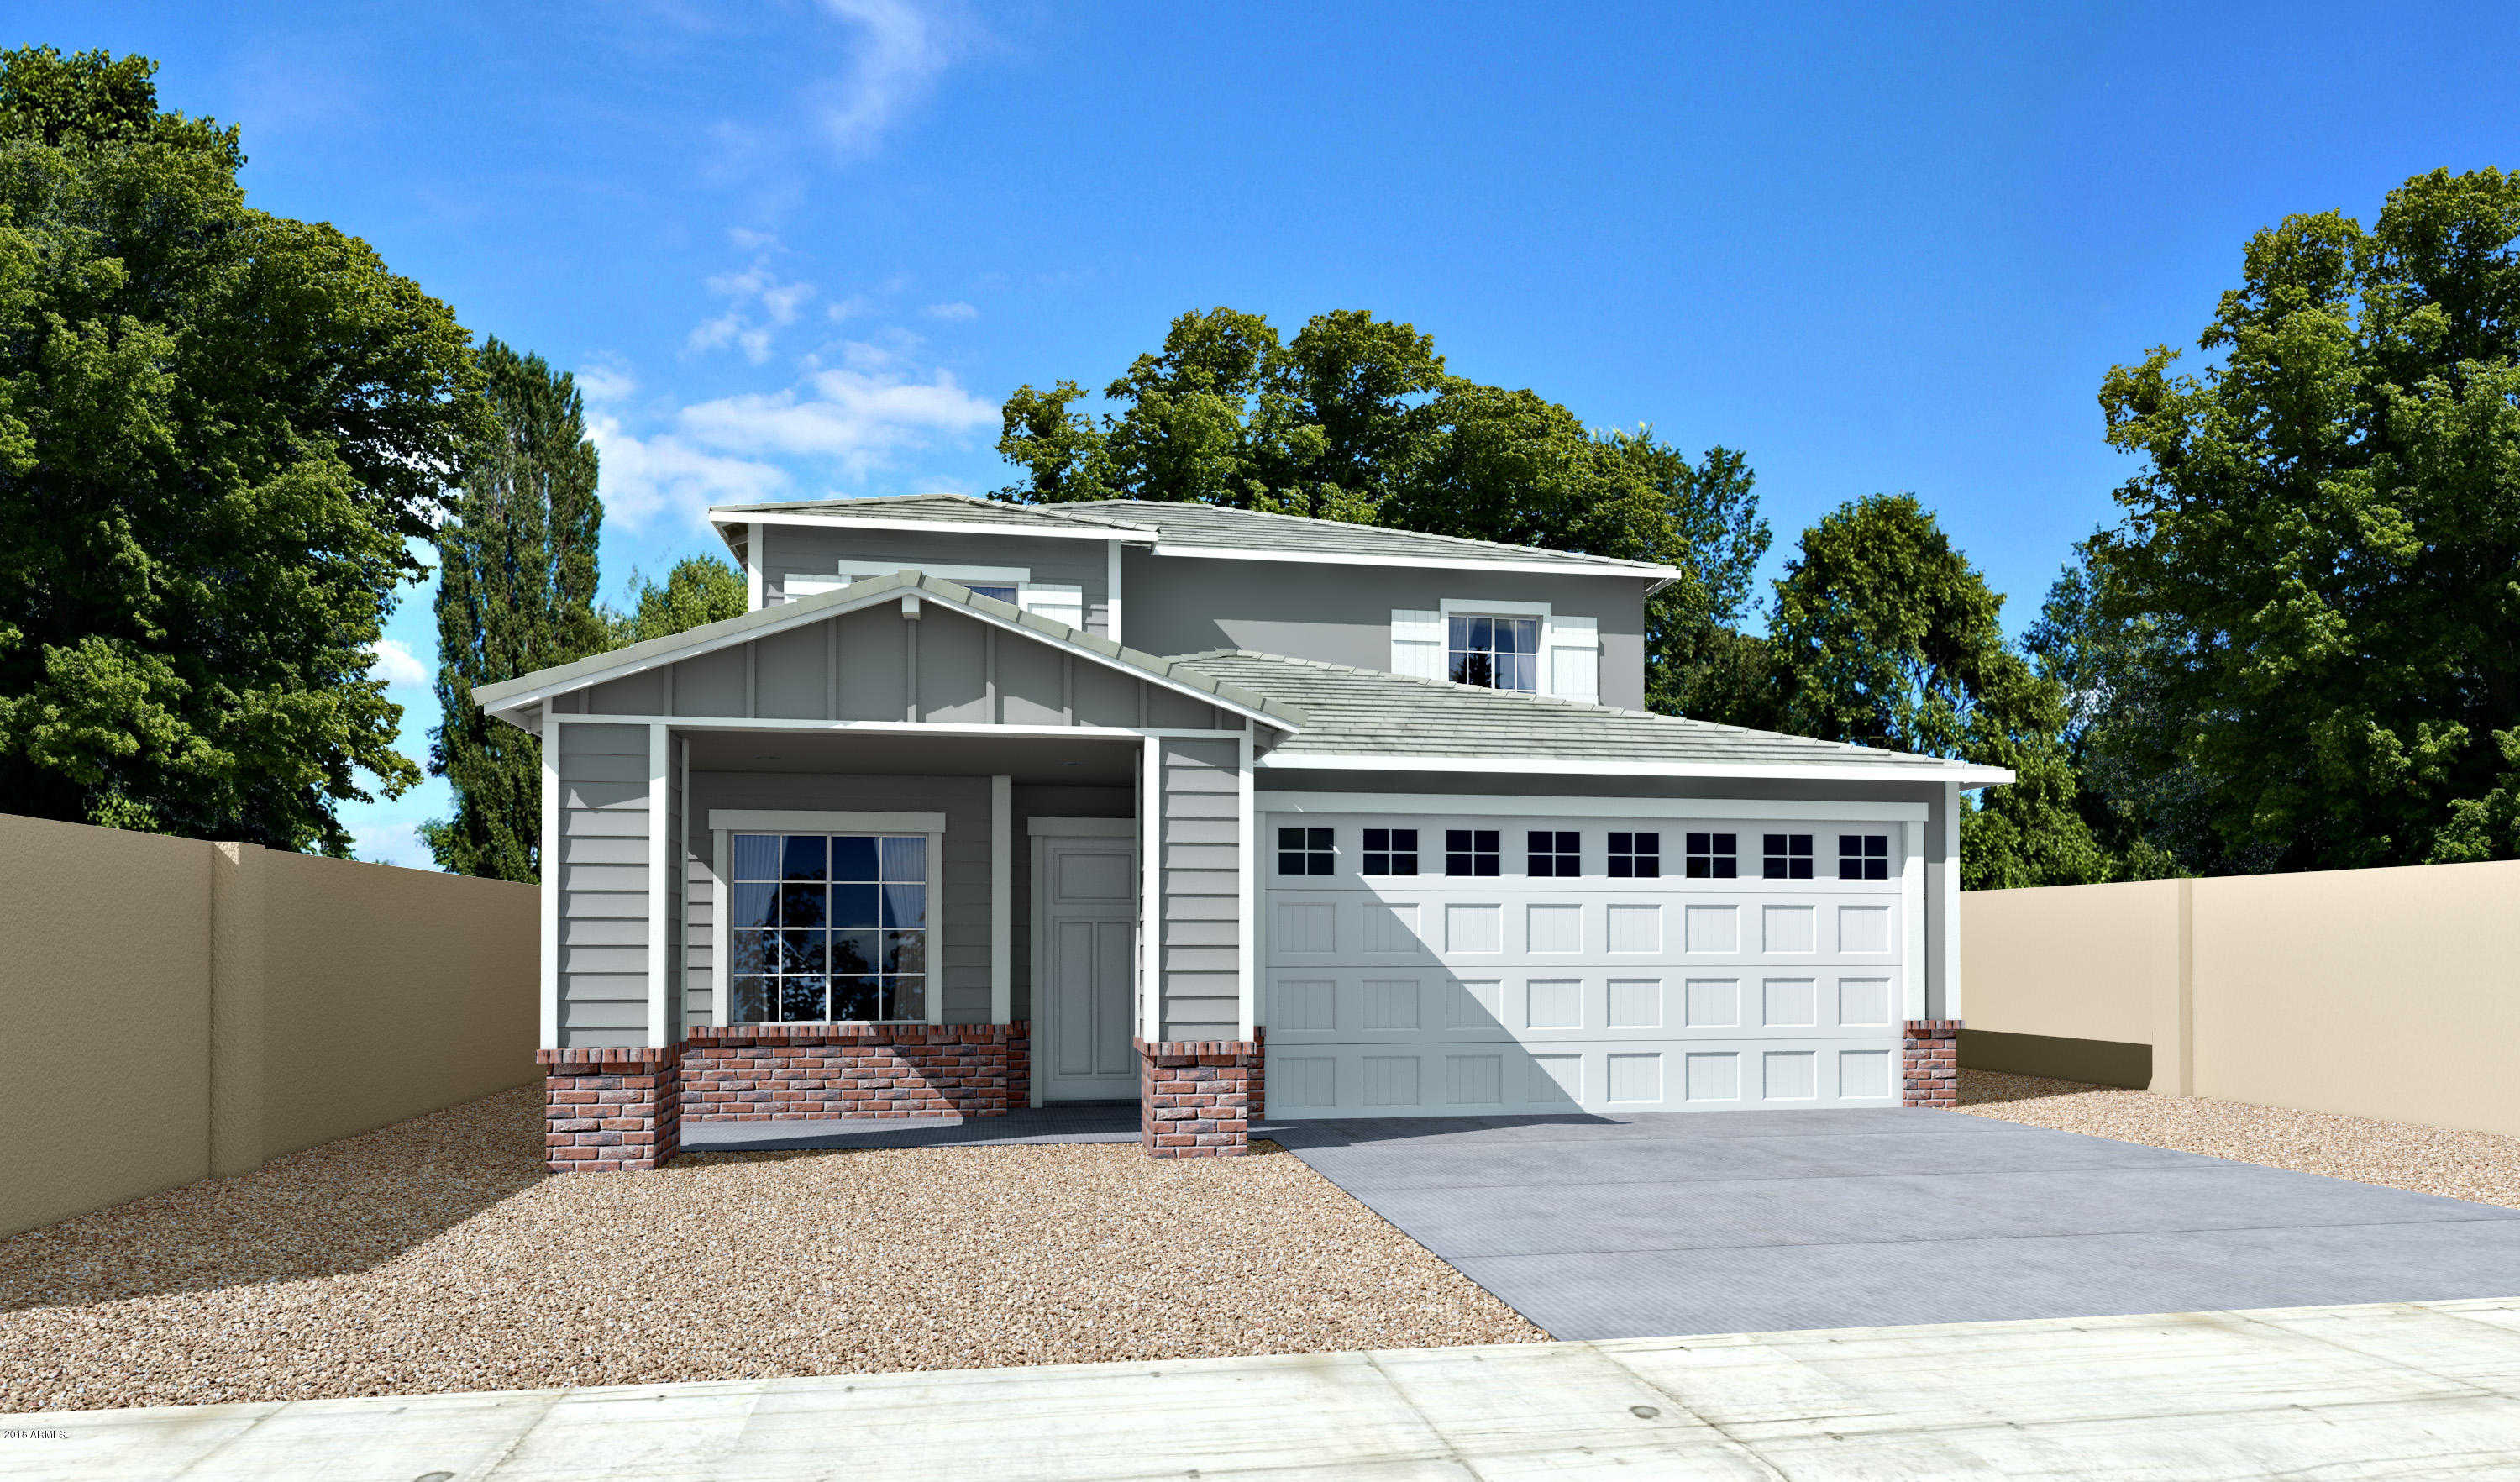 $375,000 - 6Br/3Ba - Home for Sale in Artisan At Cholla, Glendale